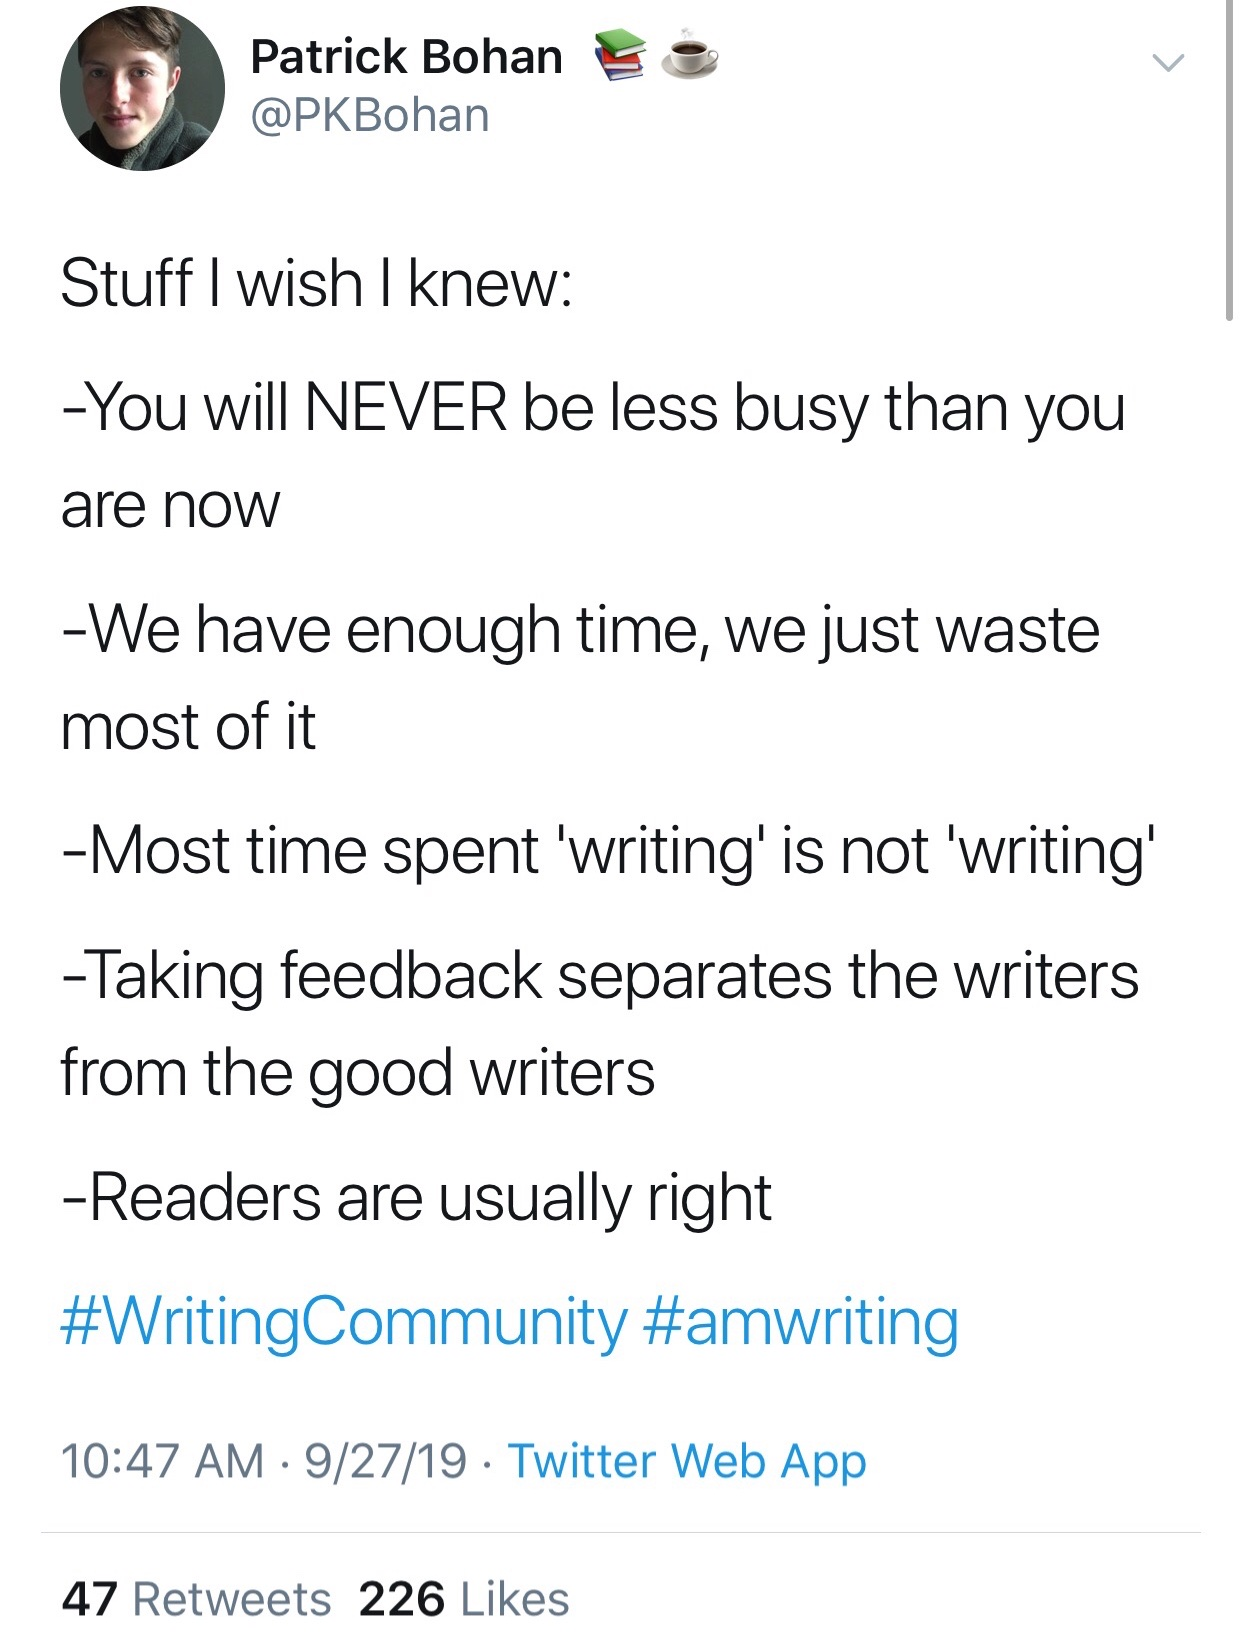 Quote: Patrick Bohan, @pkbohan - Stuff I wish I knew: - You will NEVER be less busy than you are now - We have enough time, we just waste most of it - Most time spent 'Writing' is not 'writing' - Taking feedback sets apart the writers from the good writers - Readers are usually right